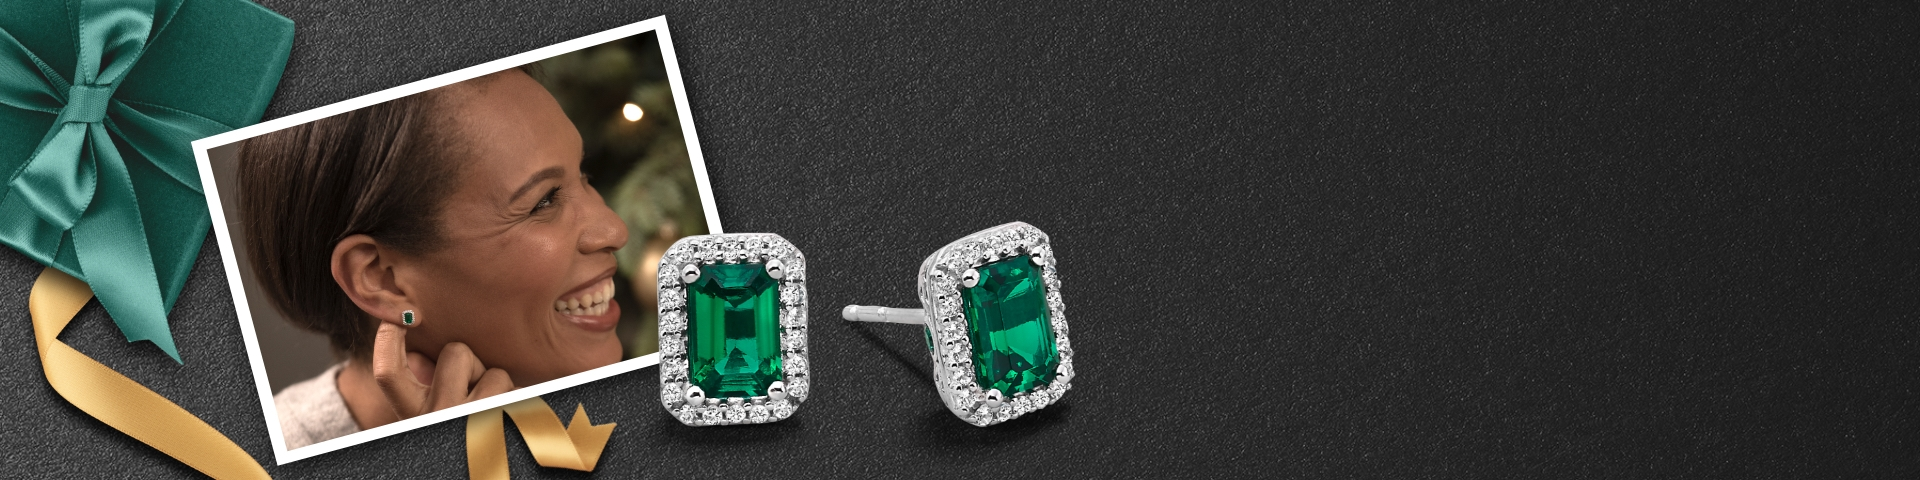 Picture of a woman wearing emerald green earrings with diamond halo next to a larger image of the earrings.